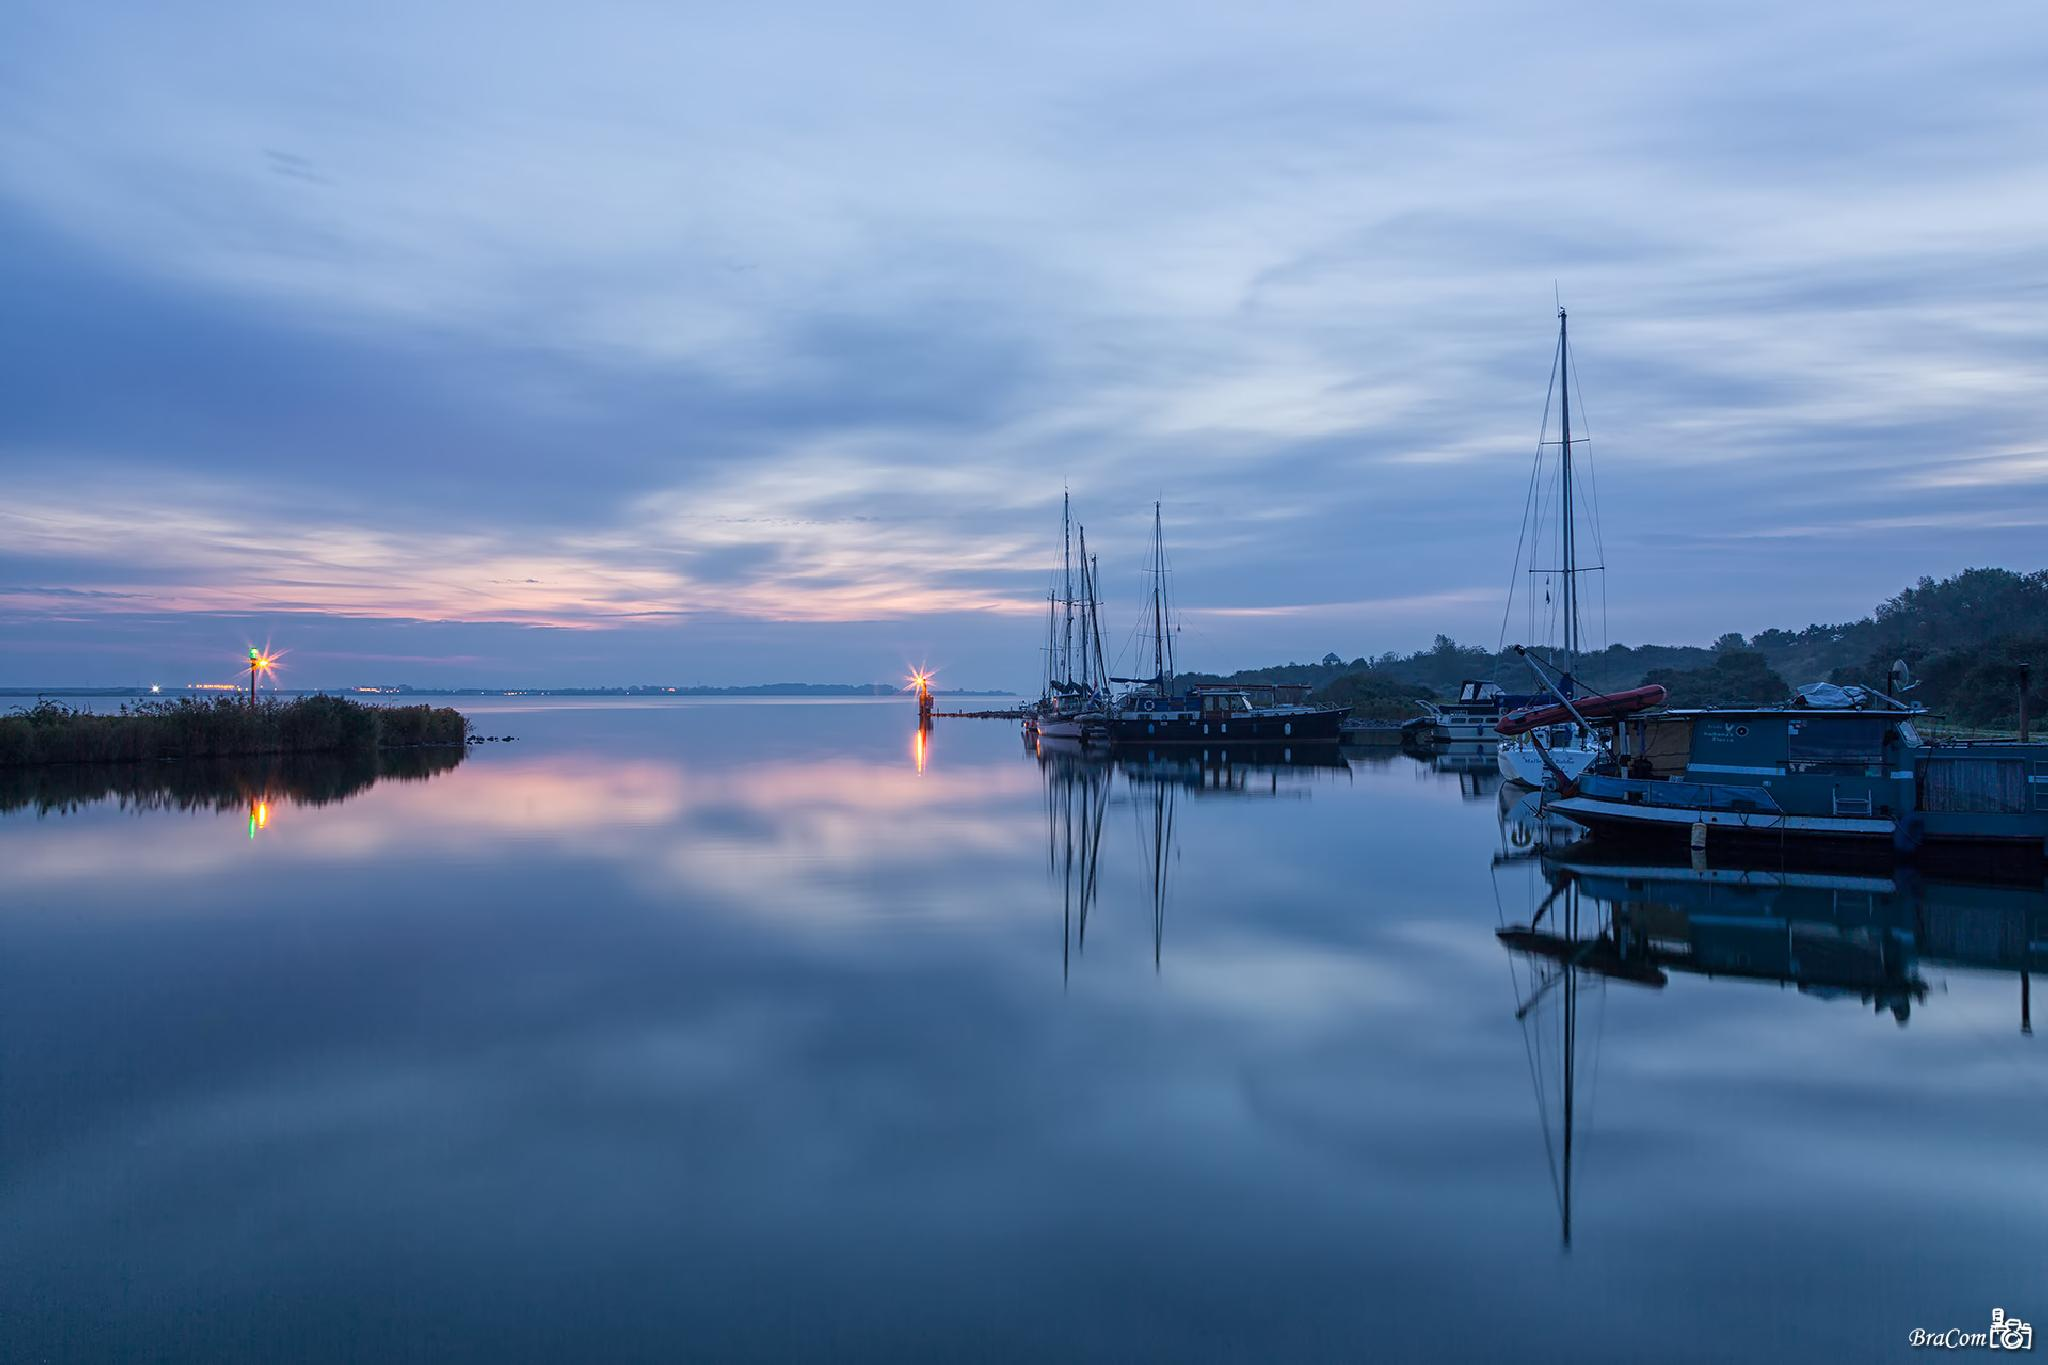 Morning light and reflections by Bram van Broekhoven